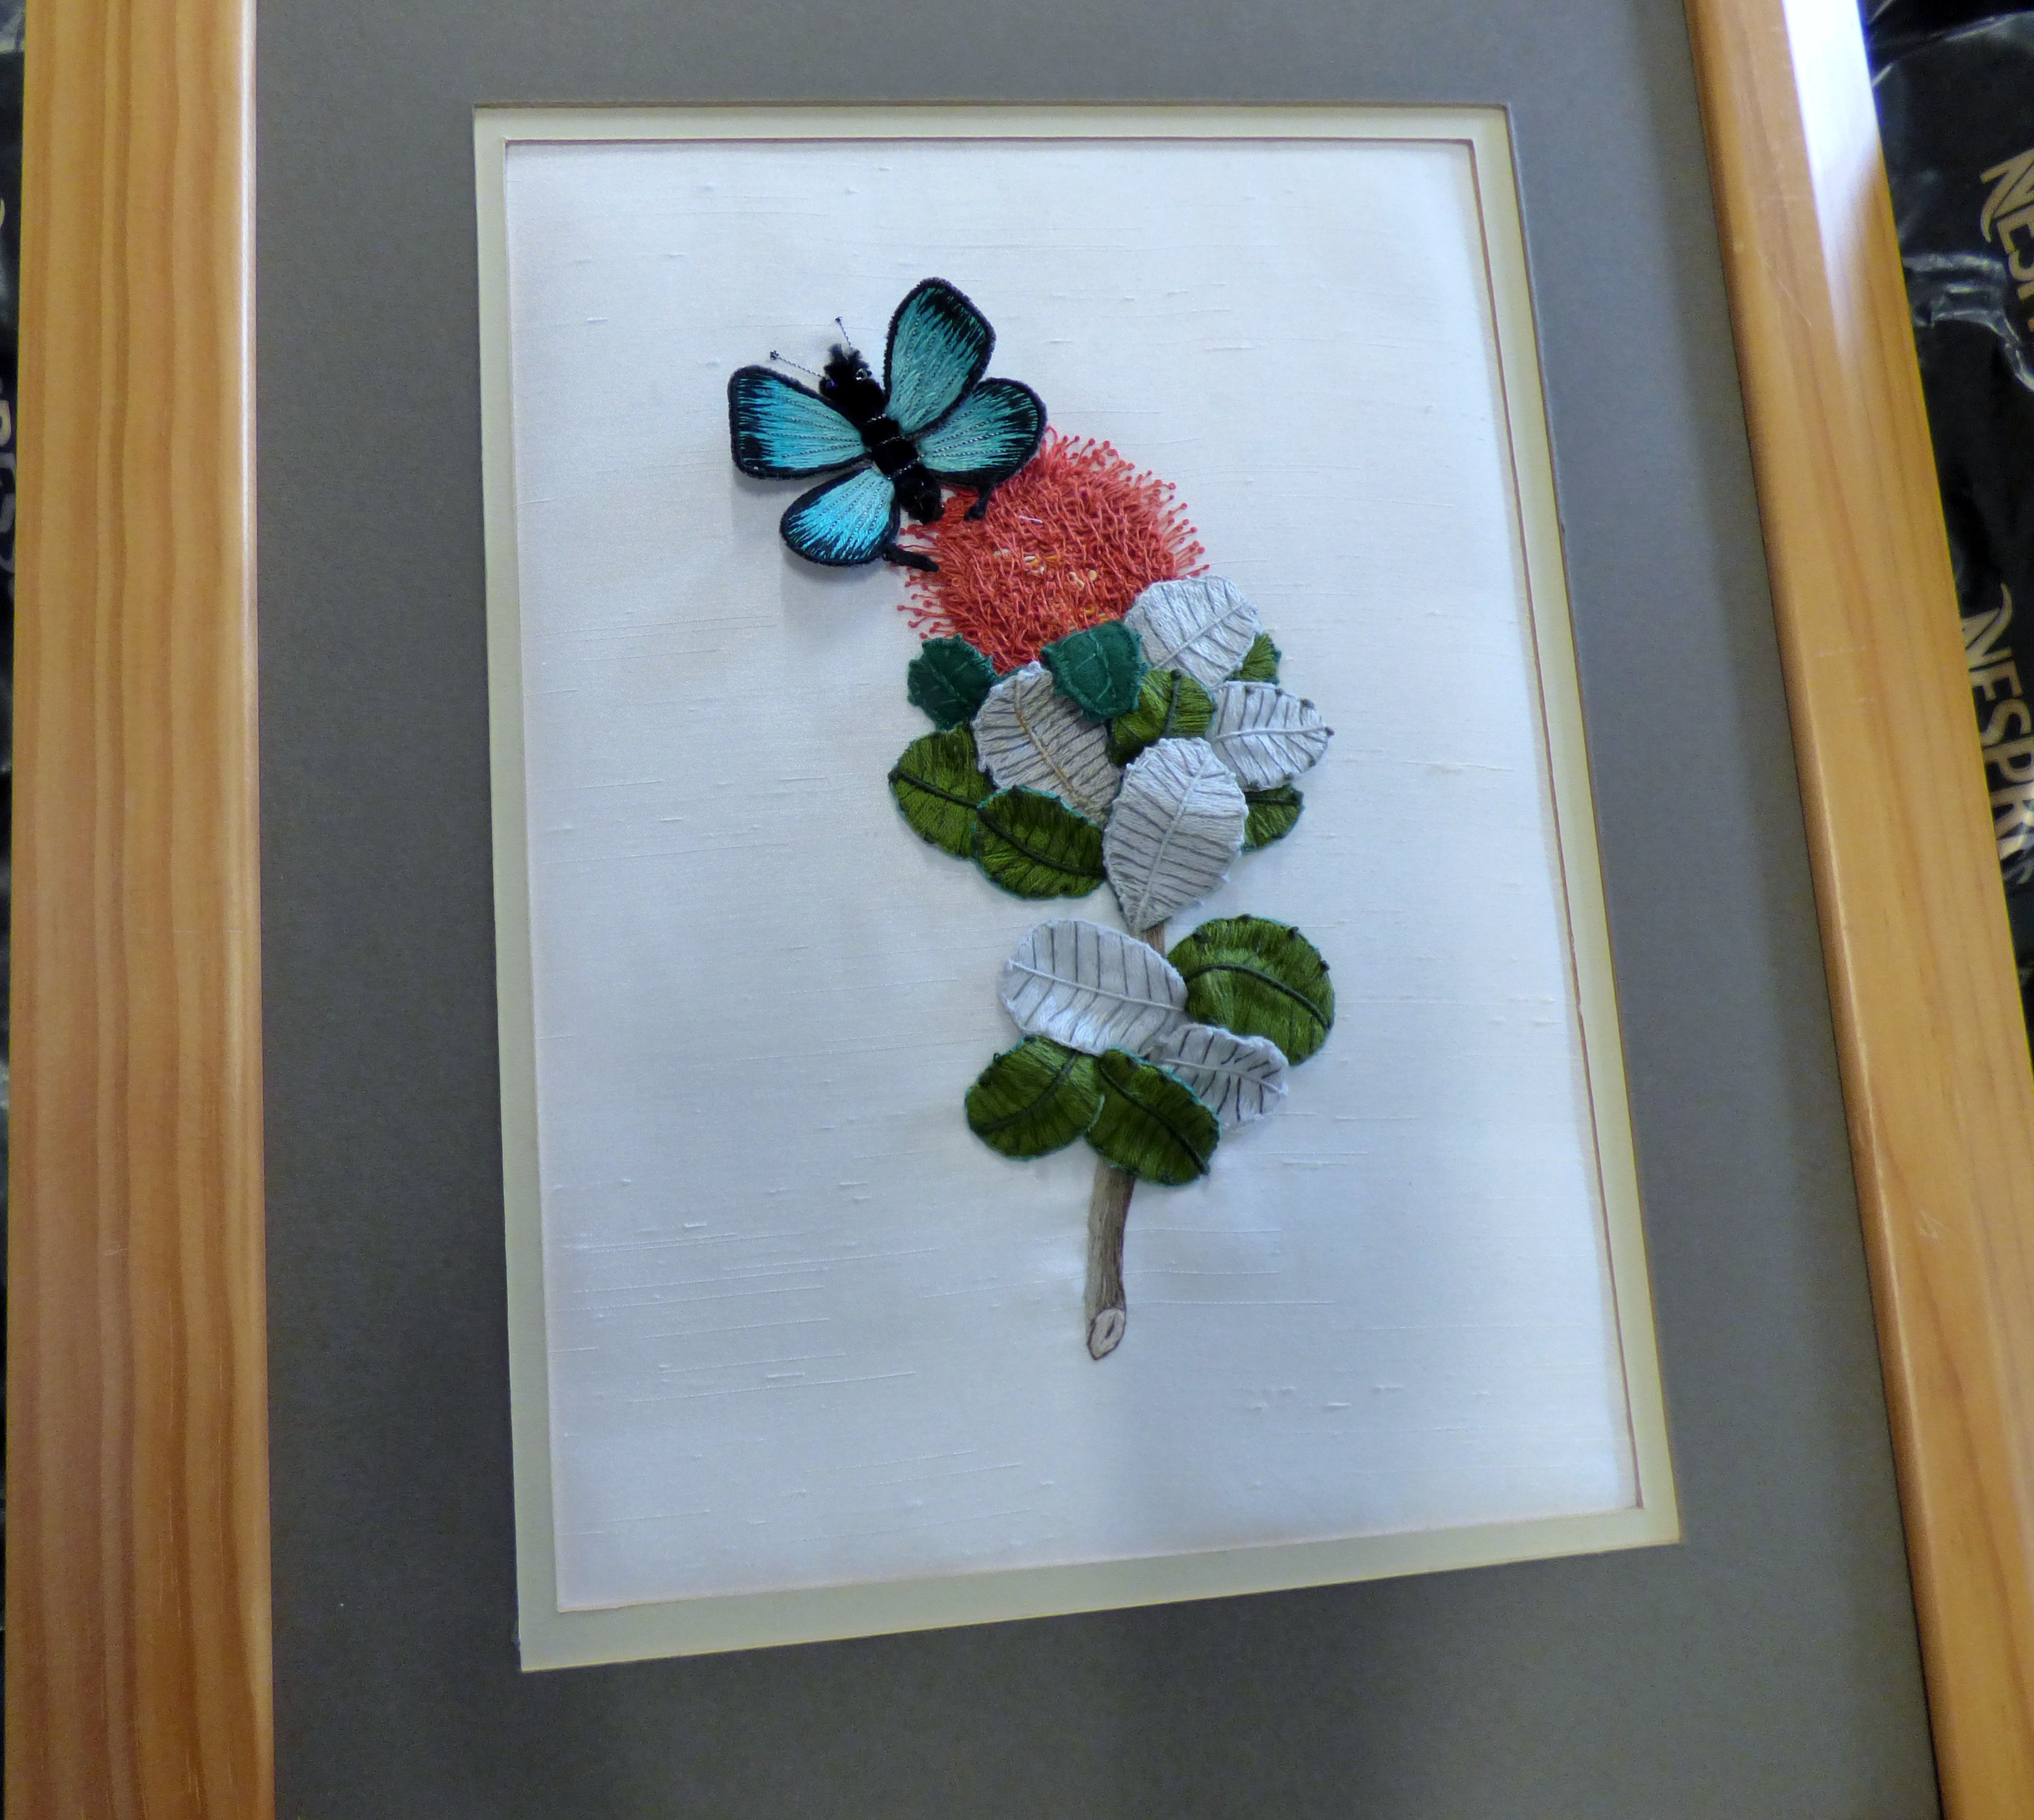 BANKSIA COCCINEA WITH AN AUSTRALIAN ULYSSES BUTTERFLY, stumpwork embroidery by Beryl Webster for our forthcoming ENDEAVOUR exhibition 2018